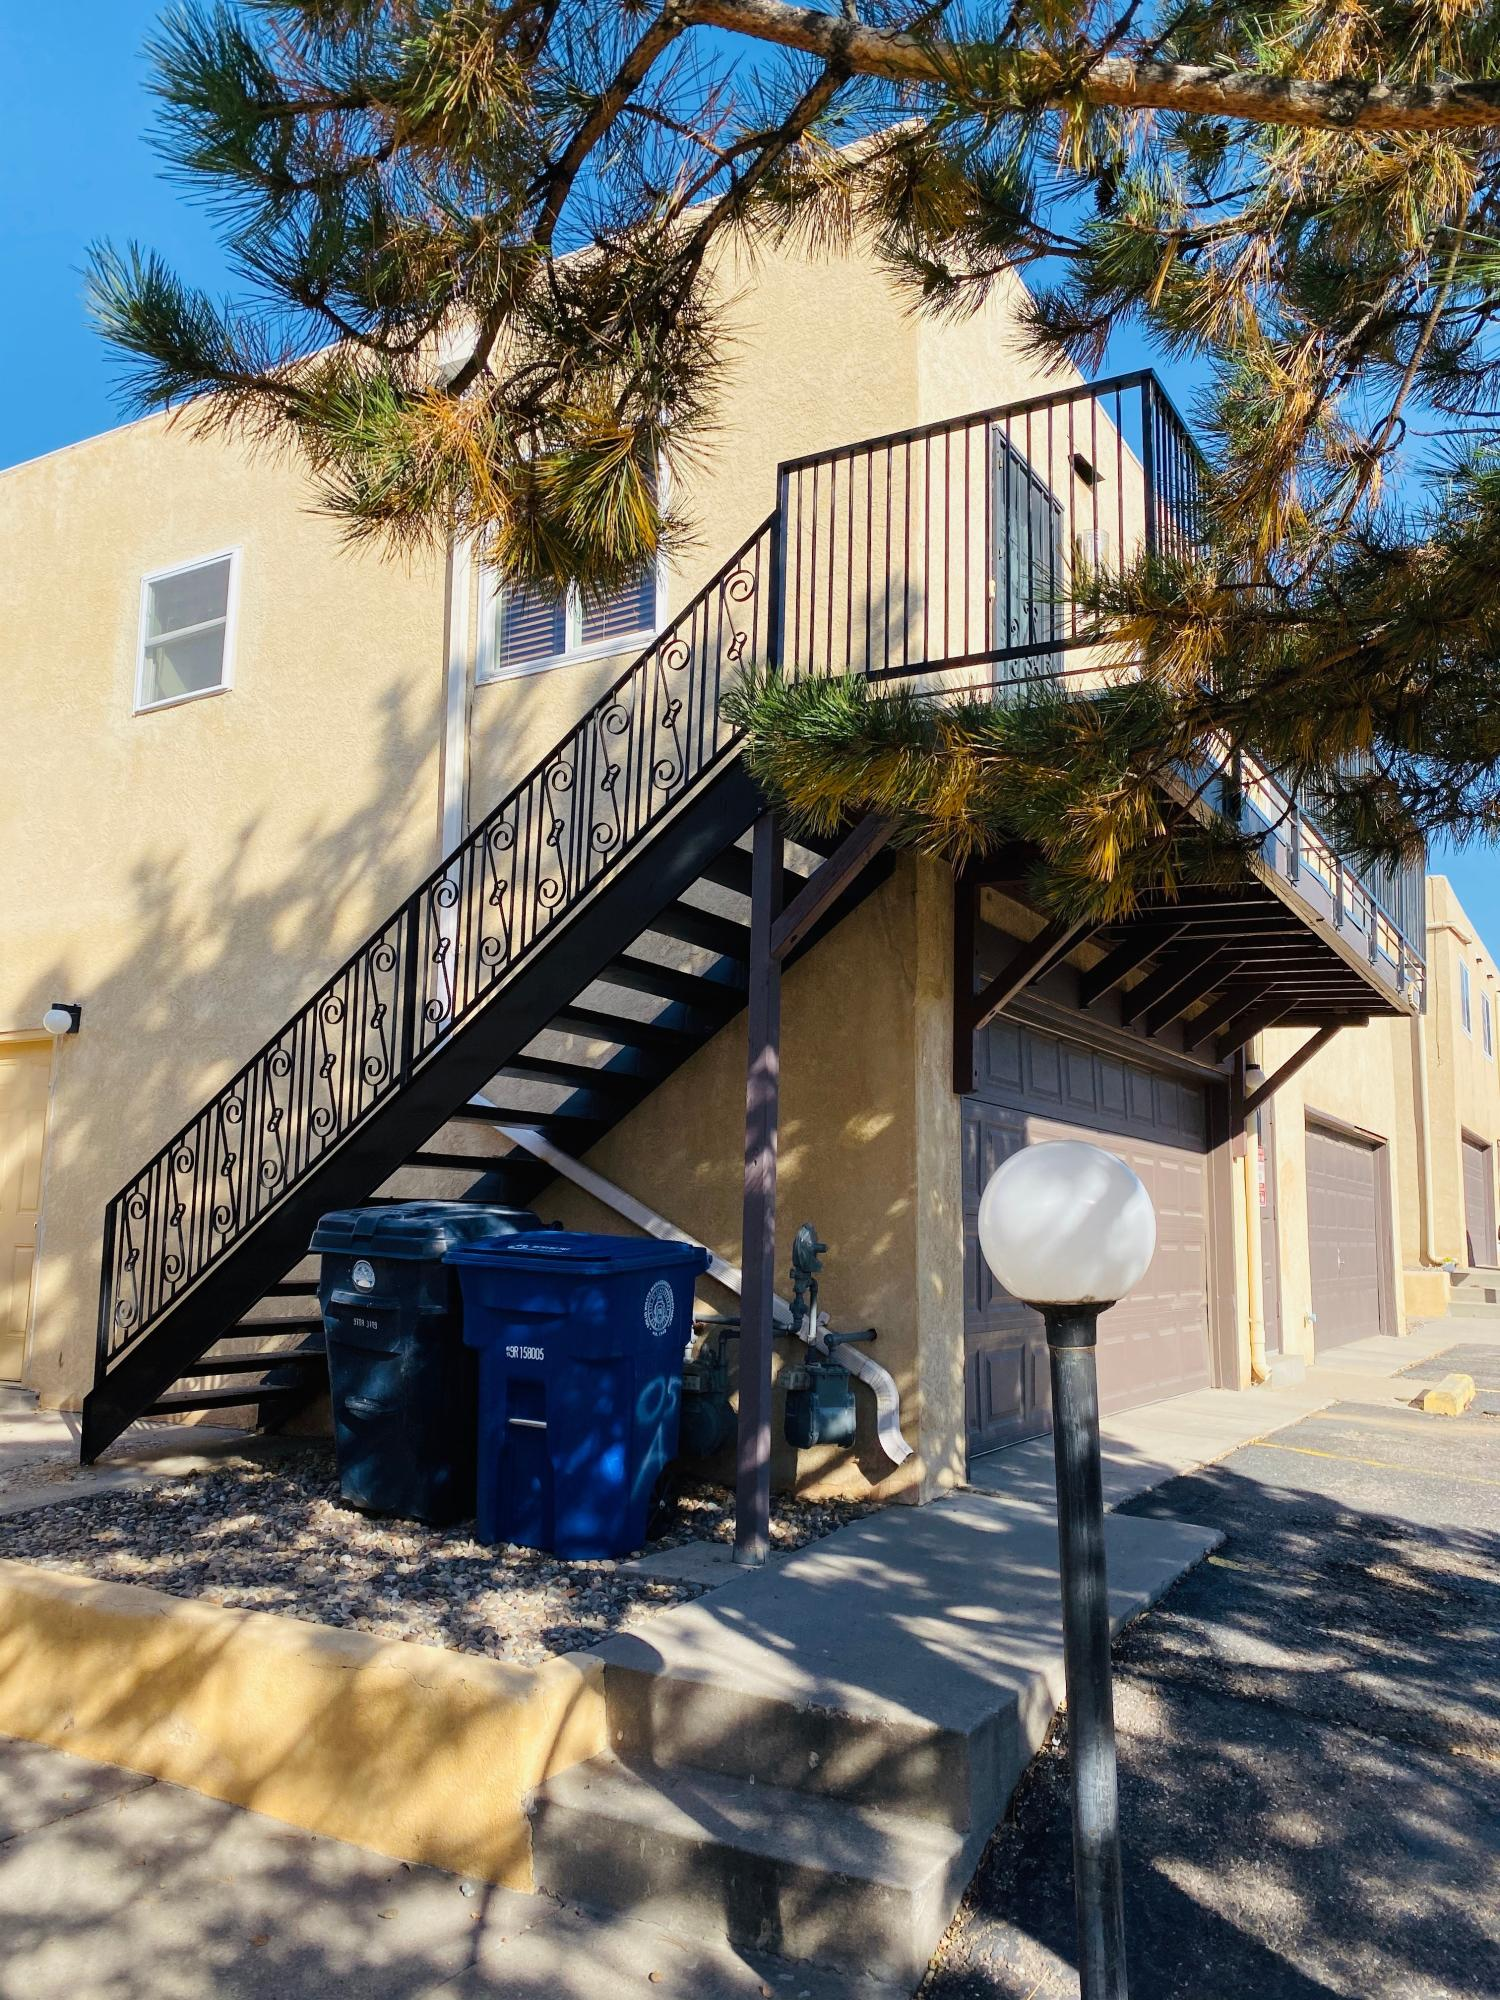 Great updated Condo! Super Cute! Remodeled 2 bedroom 1 bathroom. This appealing condo has a new furnace, new air conditioner, and also a new dishwasher! Shared Garage makes for increased security and parking.Walking distance to Tramway for hiking, biking and walking trails.